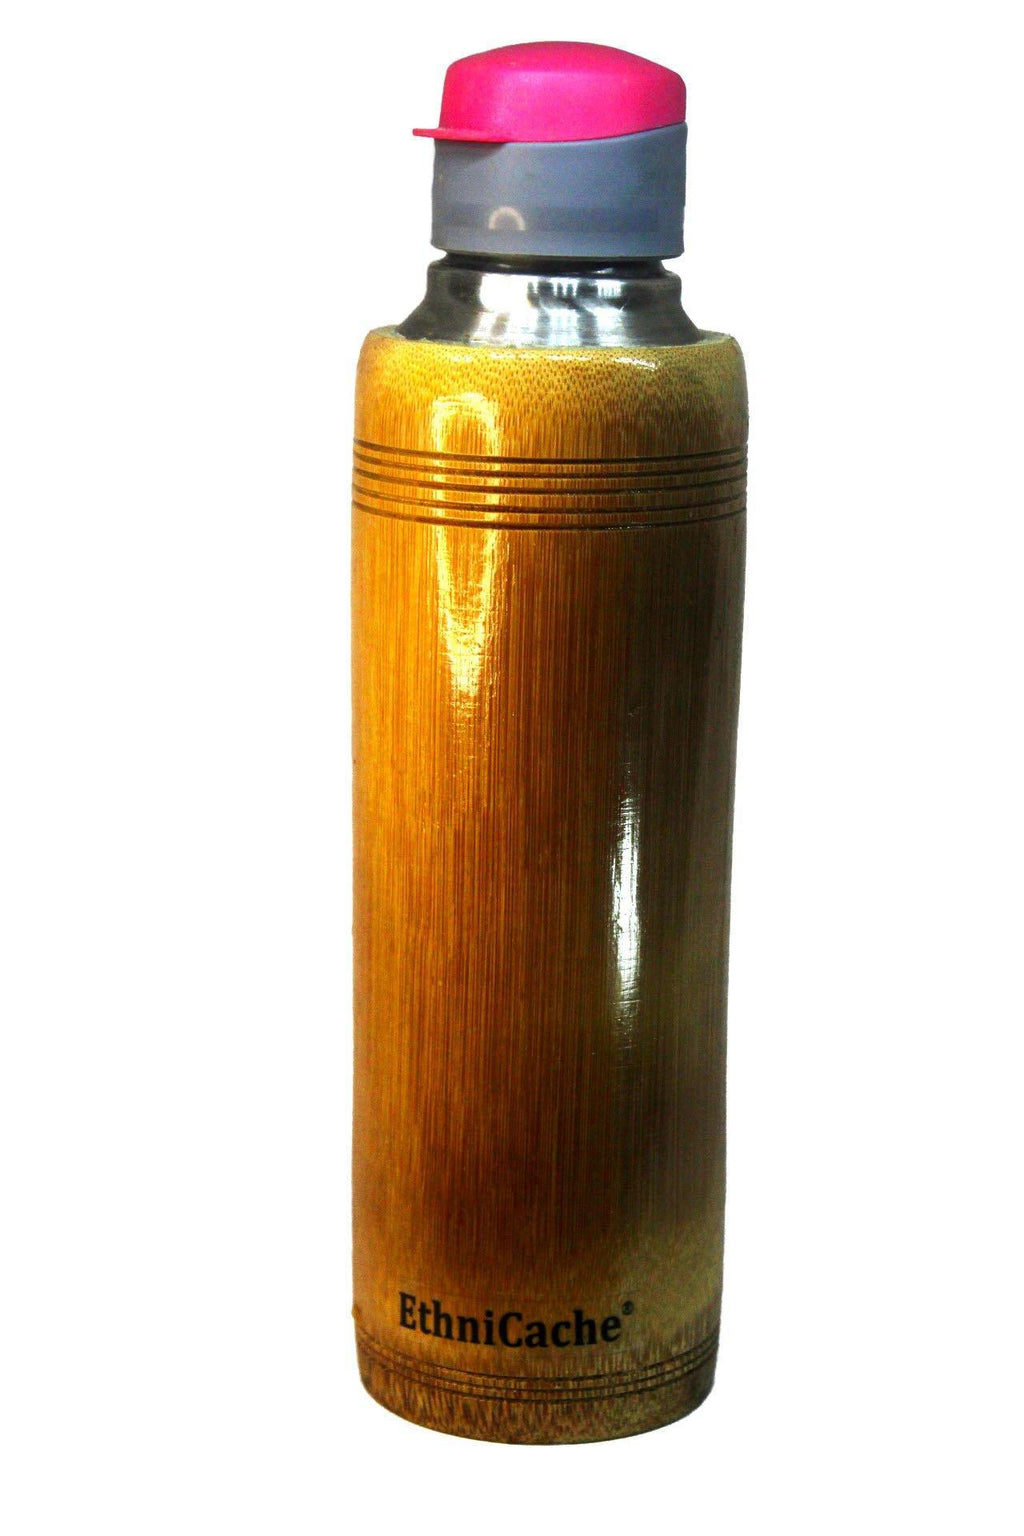 EthniCache Bottle Handmade Bamboo and Steel Sipper with Pink and Green Lid